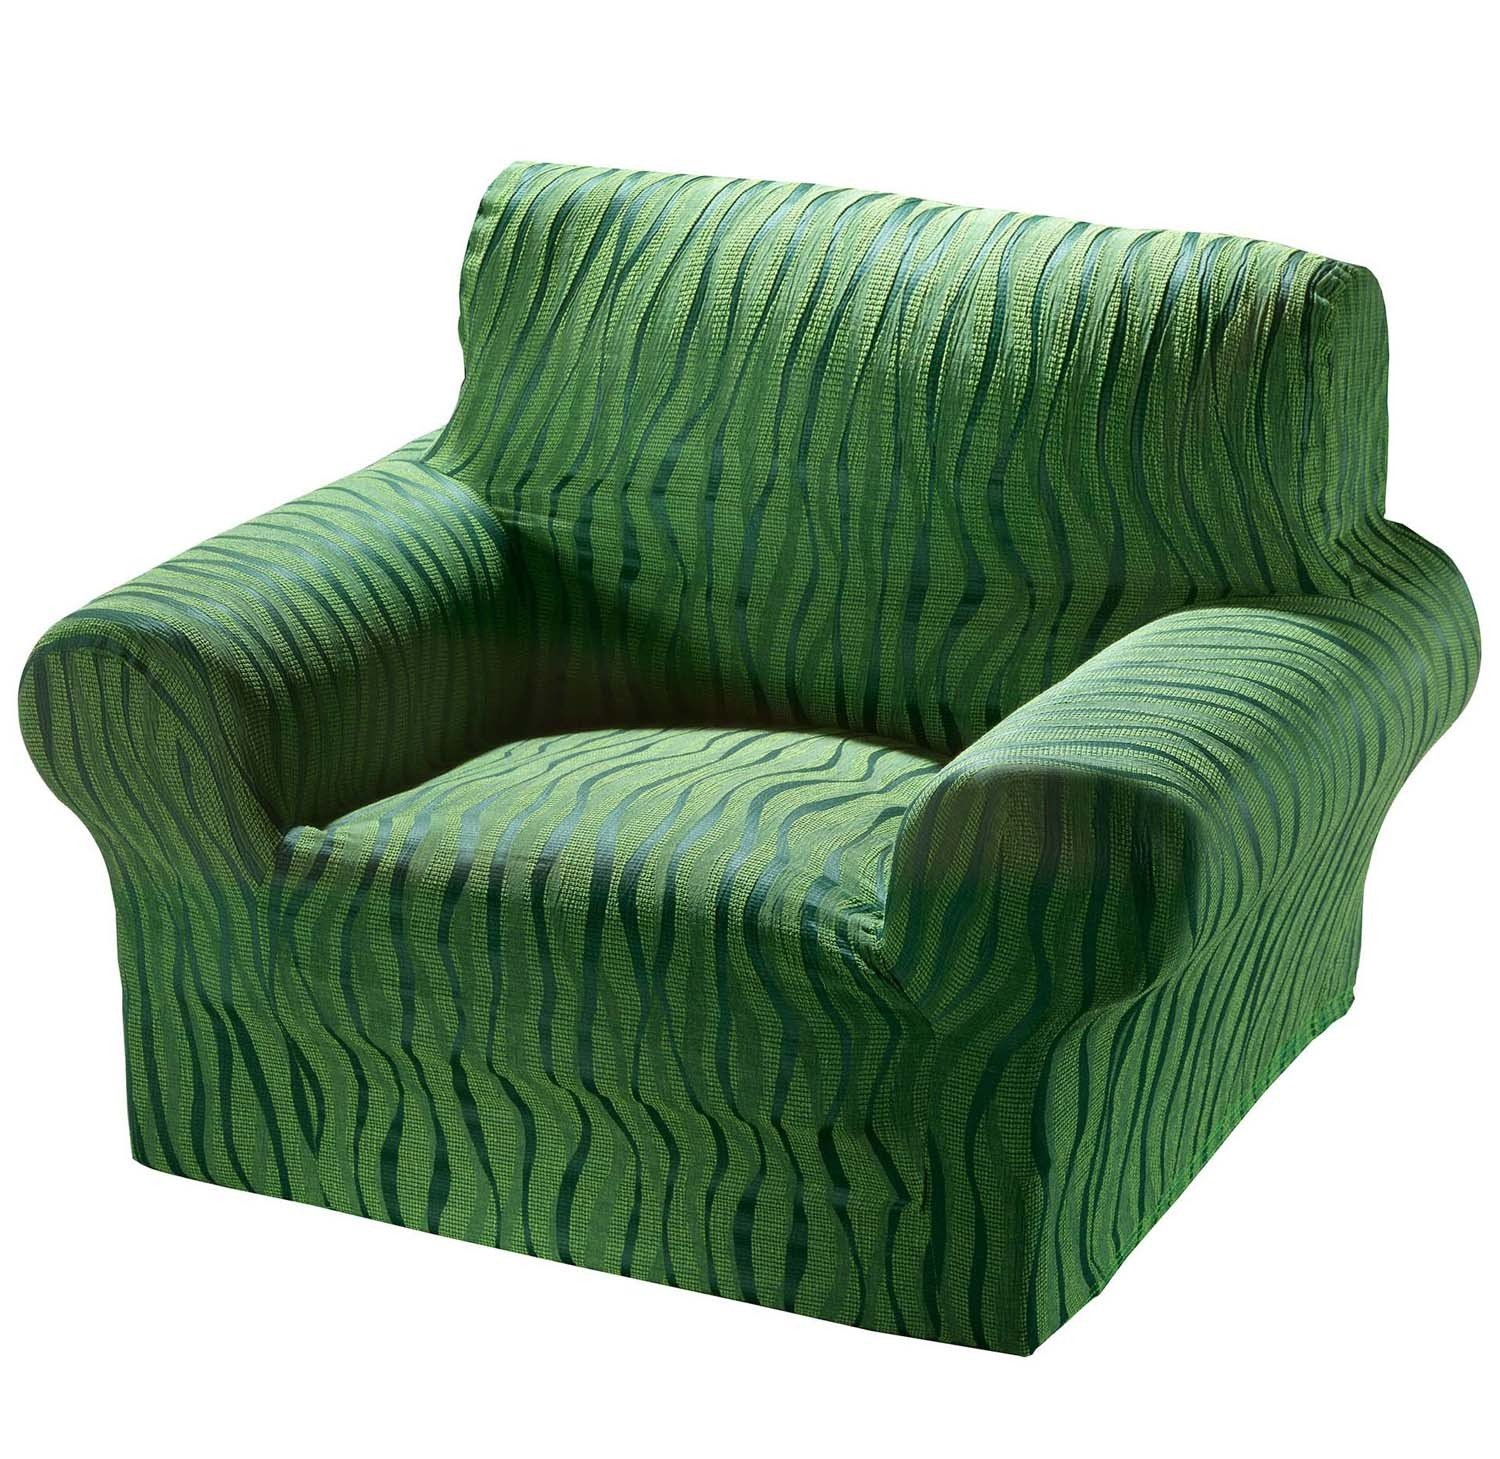 Housse-protect.Fauteuil vert